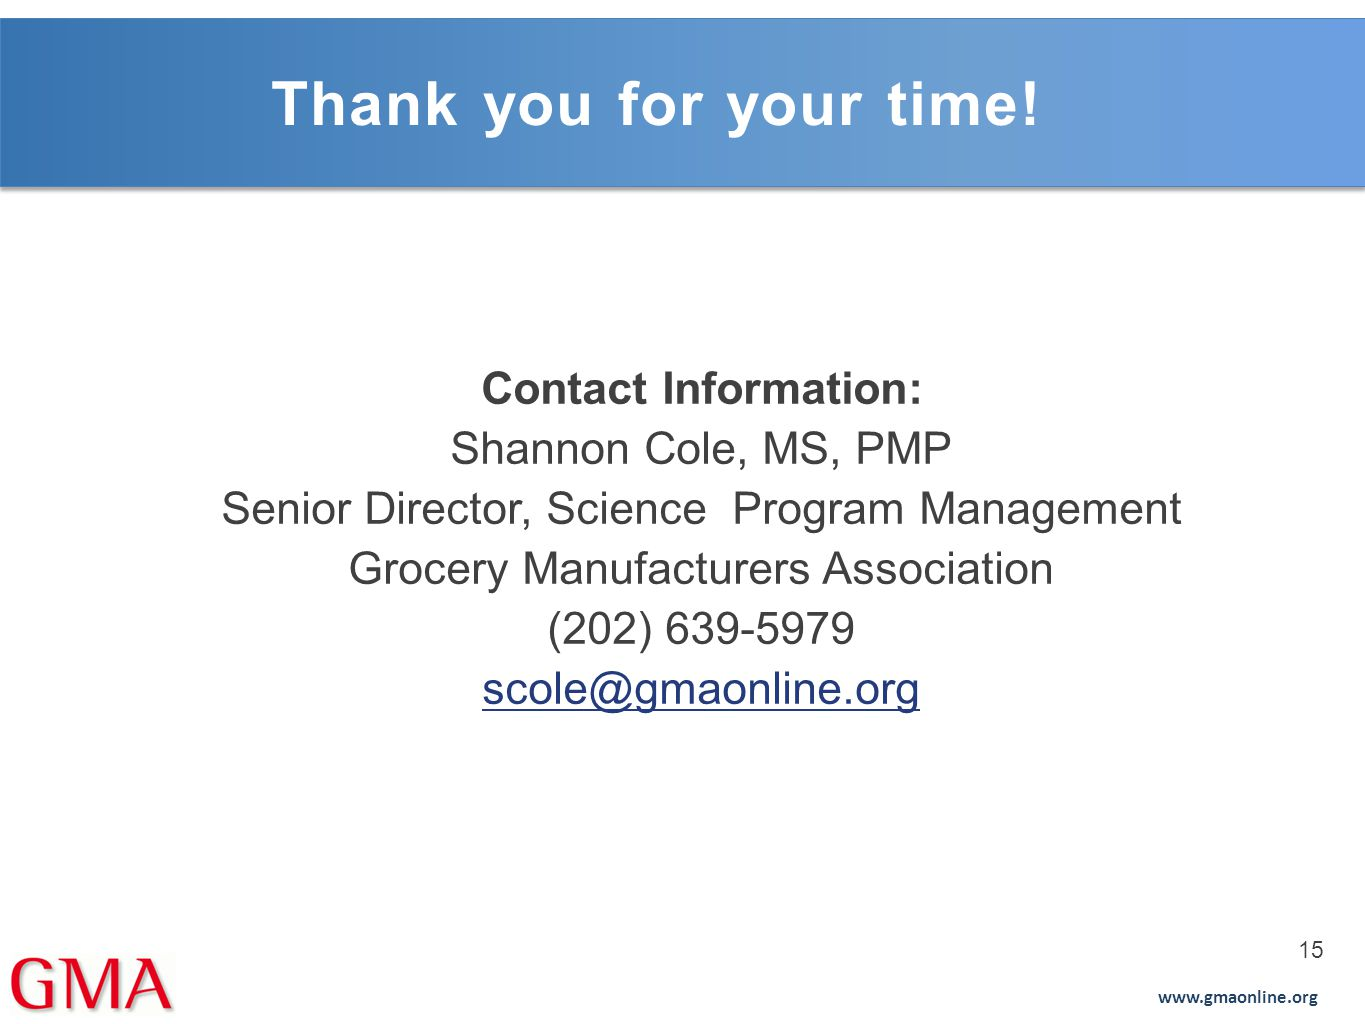 Thank you for your time! Contact Information: Shannon Cole, MS, PMP. Senior Director, Science Program Management.